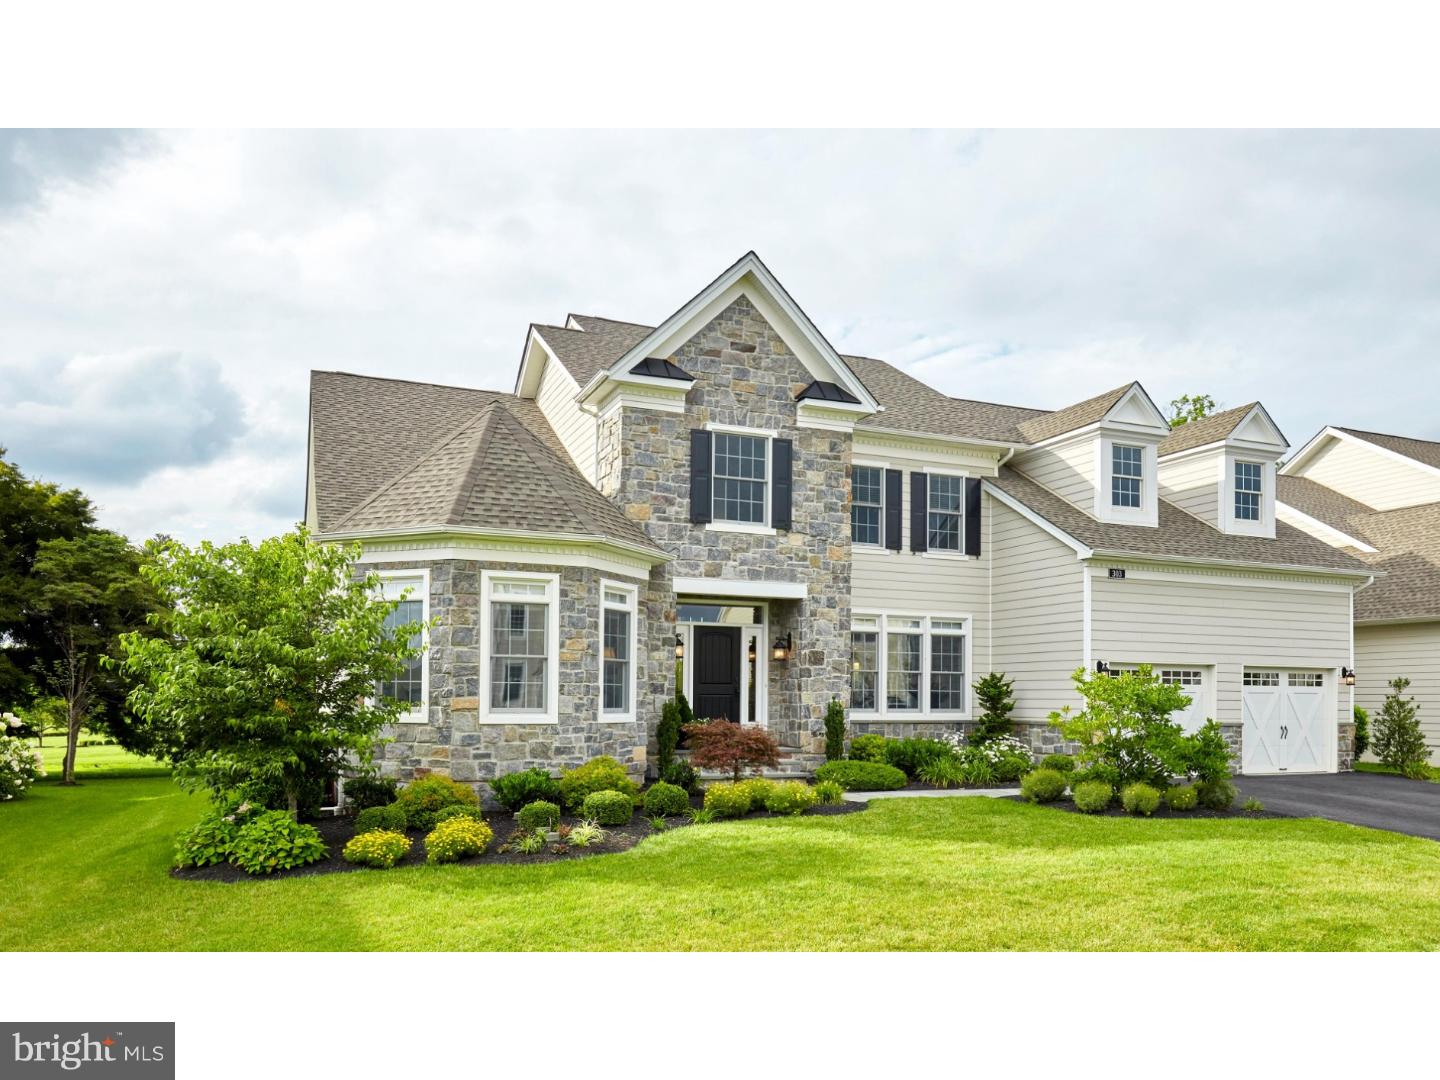 303 Old Liseter Road Newtown Square, PA 19073